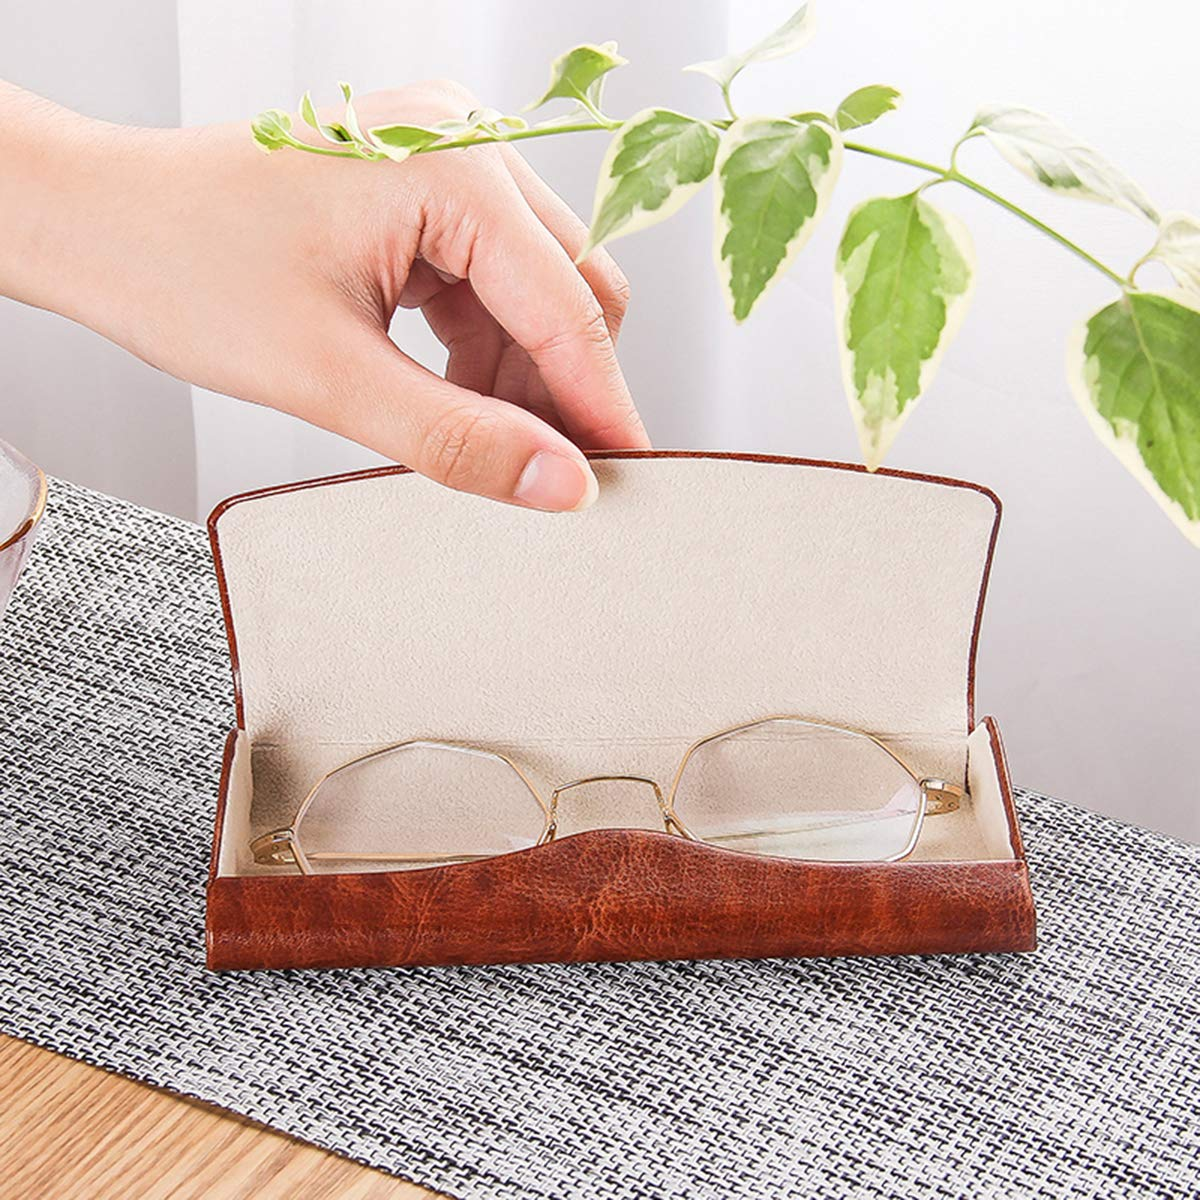 PU Leather Hard Shell Eyeglass Case Portable Sunglasses Glasses Holder Pouch (Brown) by Bauson (Image #8)